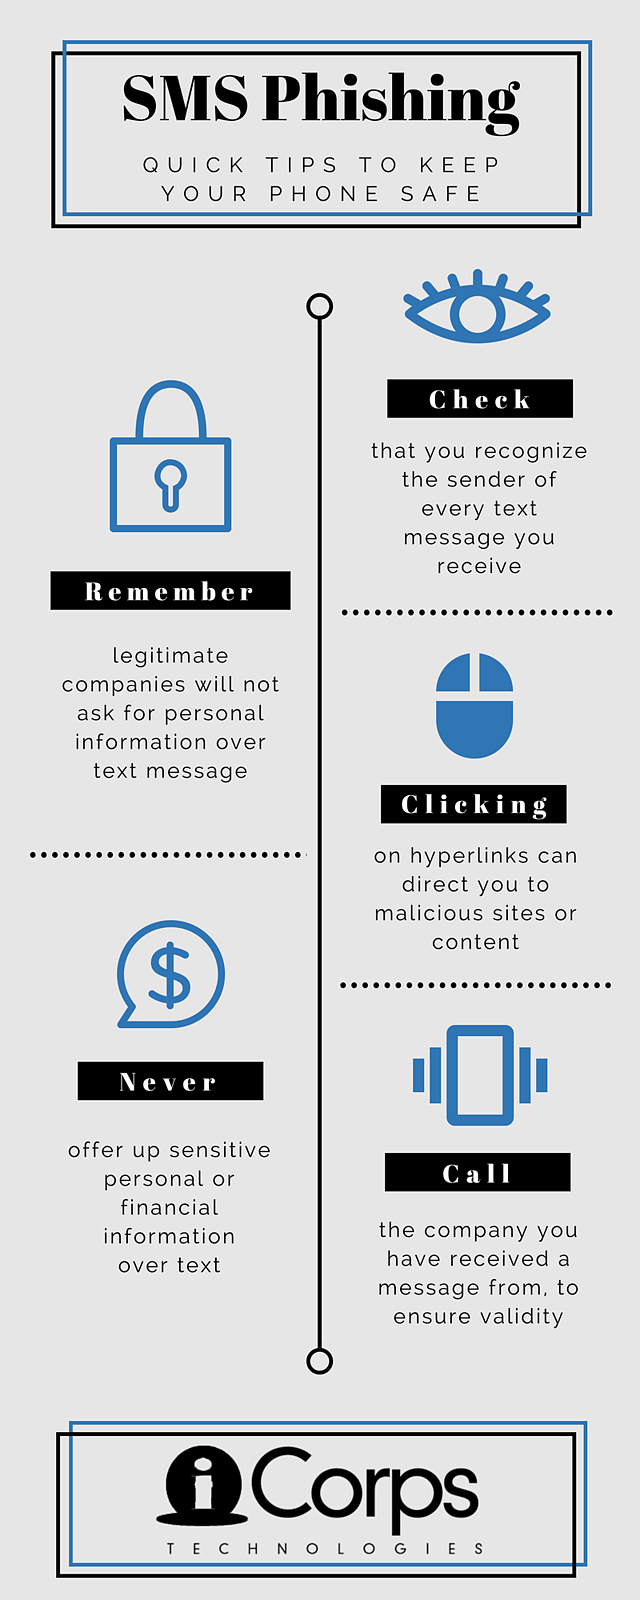 [INFOGRAPHIC] SMS Phishing: Quick Tips to Keep Your Phone Safe